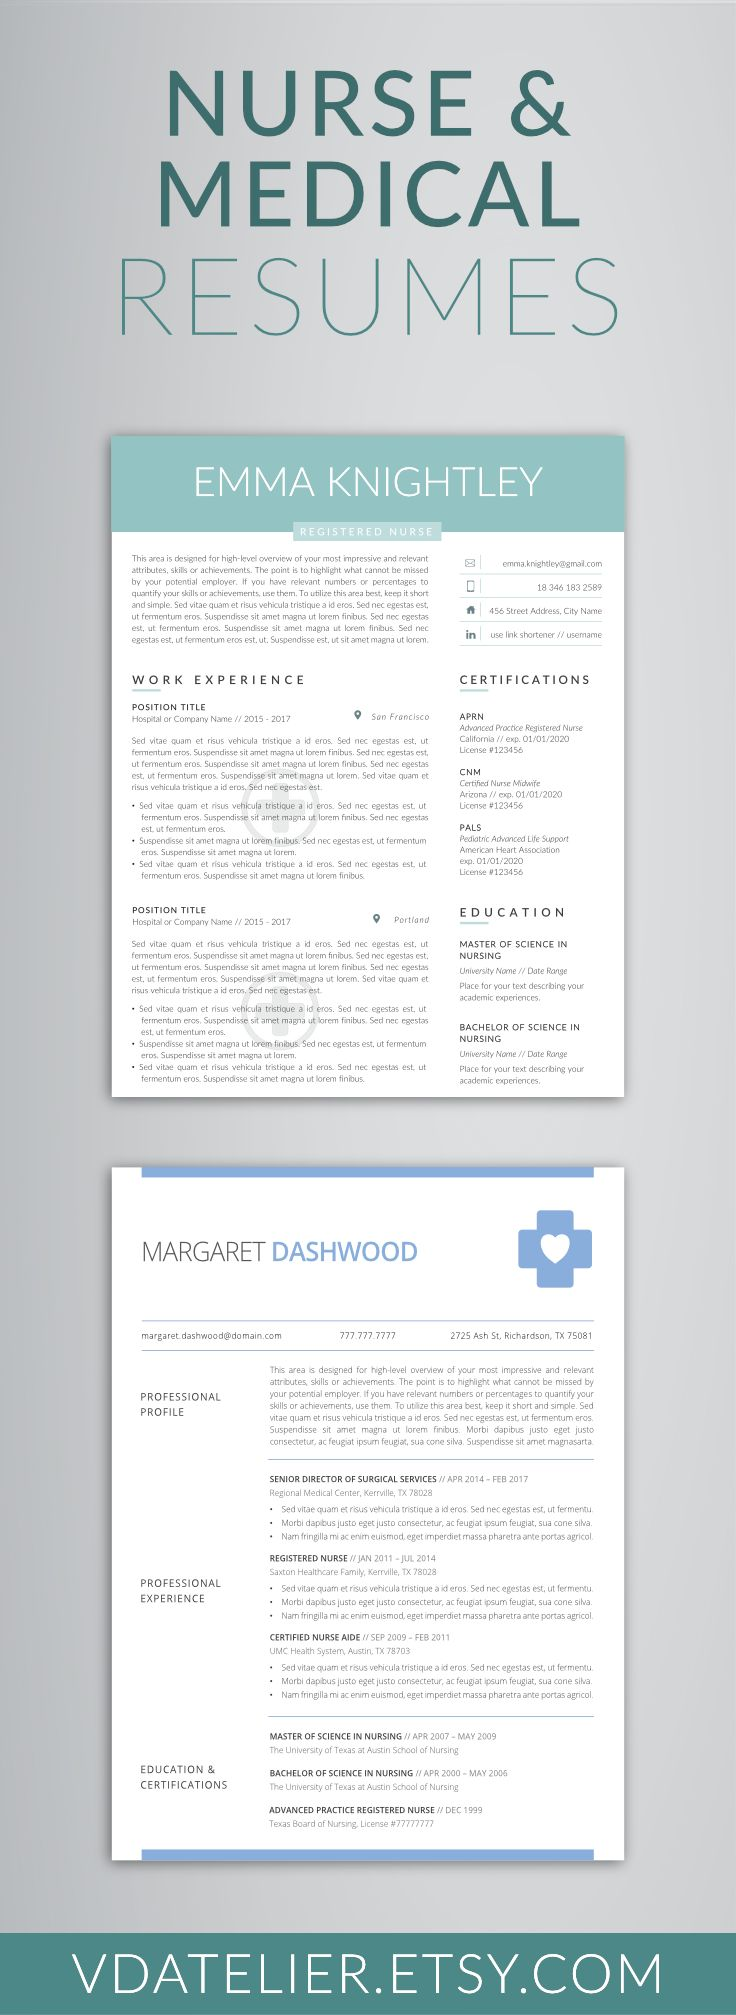 Nurse/Medical Resume Template | Minimalist, Clean, Simple, Professional and Creative Resume | Instant Download | Cover Letter & References | Modern Resume